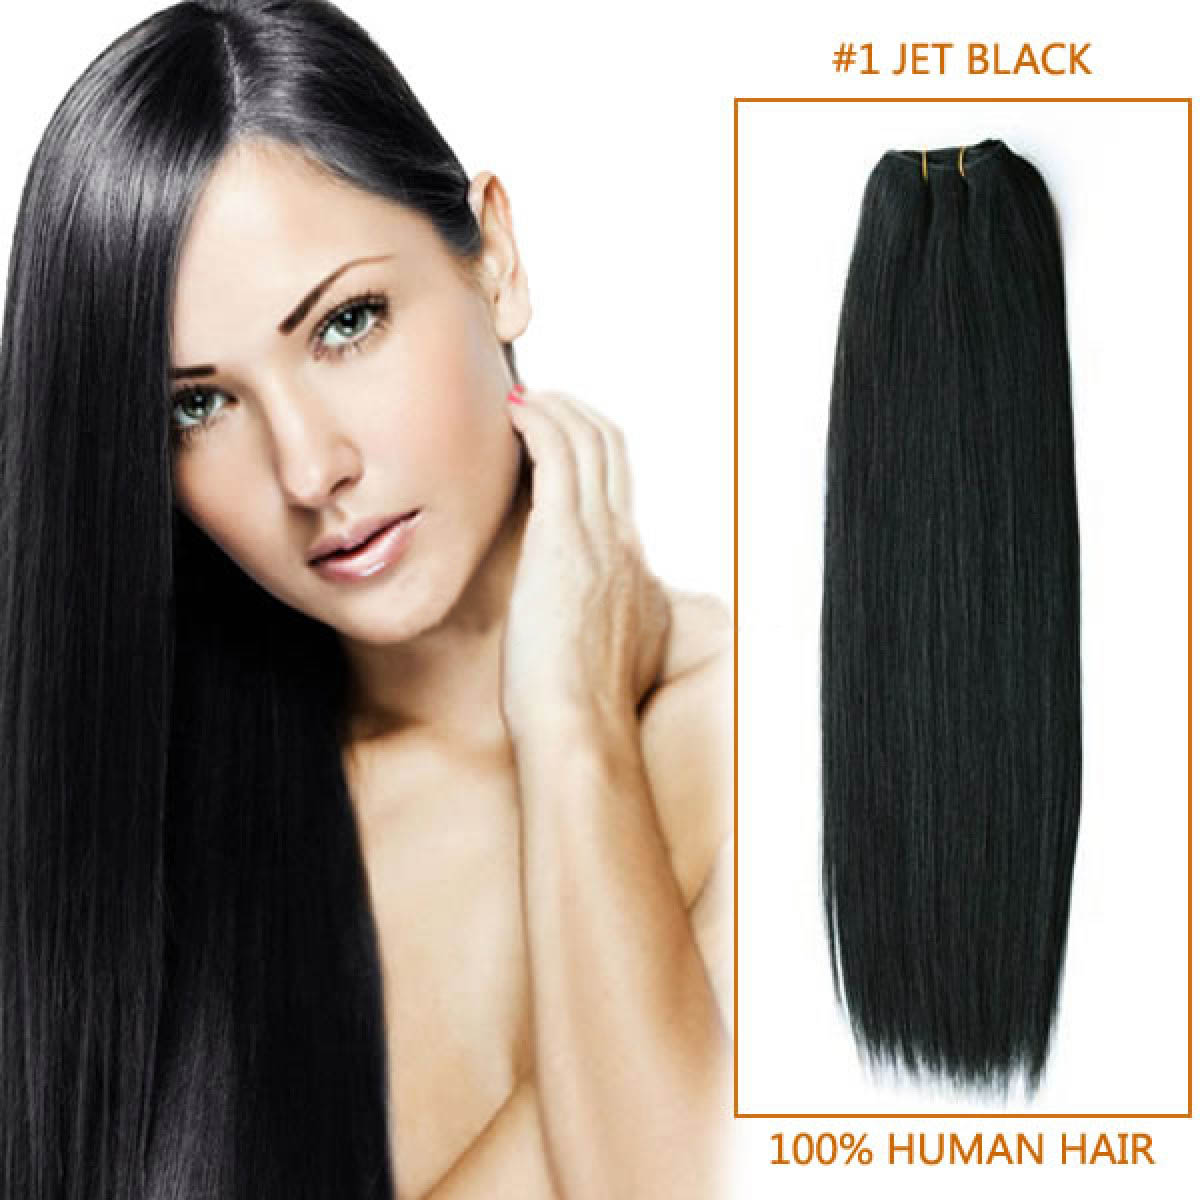 14 Inch #1 Jet Black Straight Indian Remy Hair Wefts